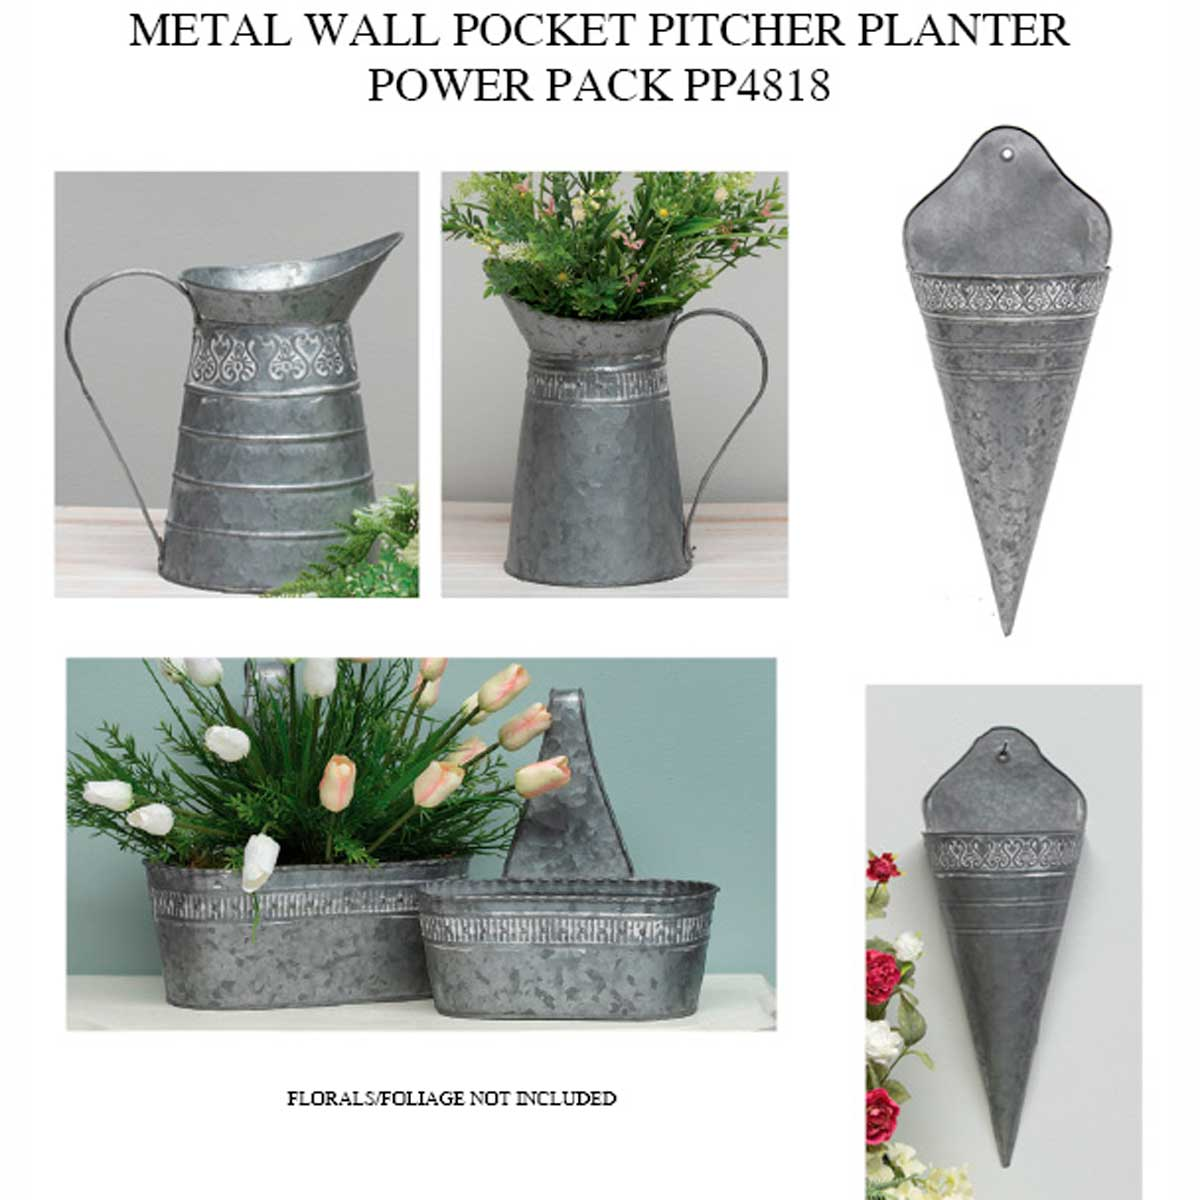 METAL WALL POCKET/PITCHER/PLANTER POWER PACK 6 UNITS